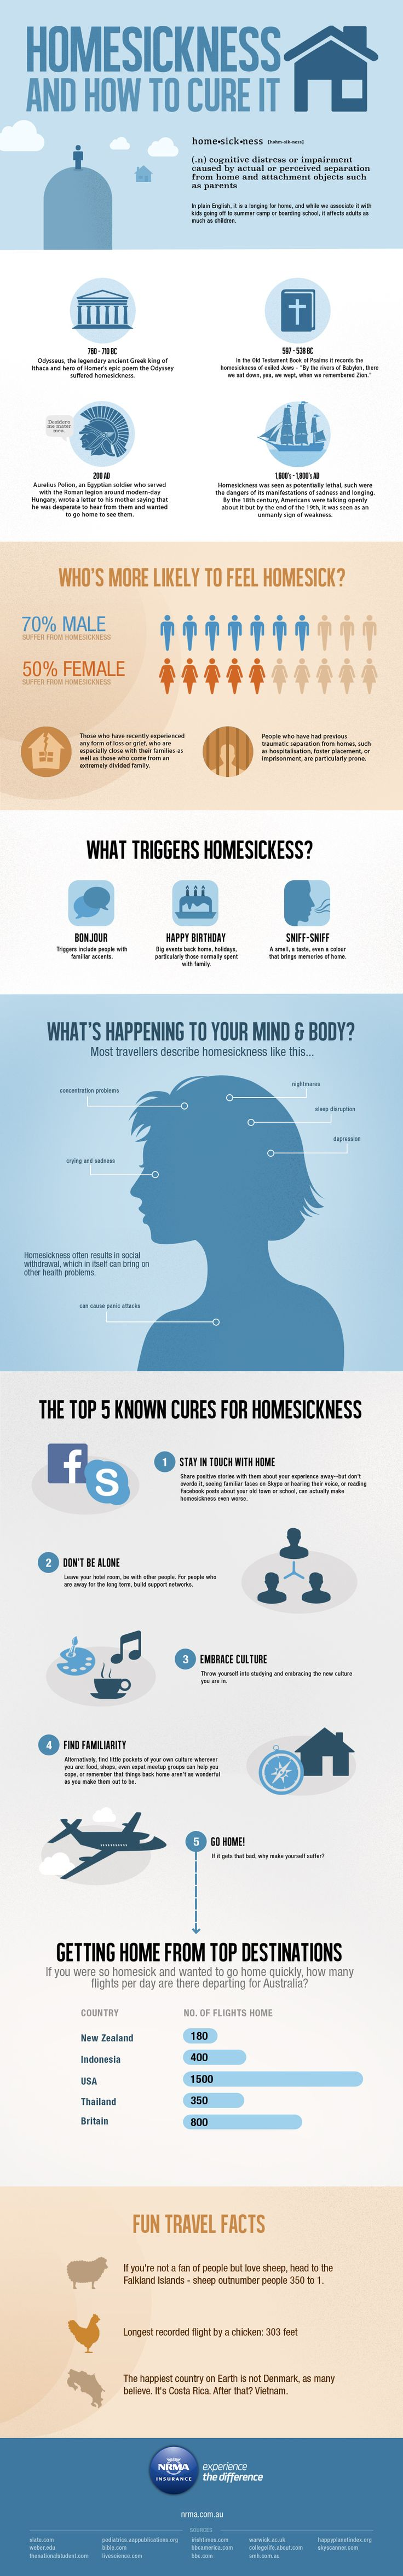 Homesickness - how to cure it